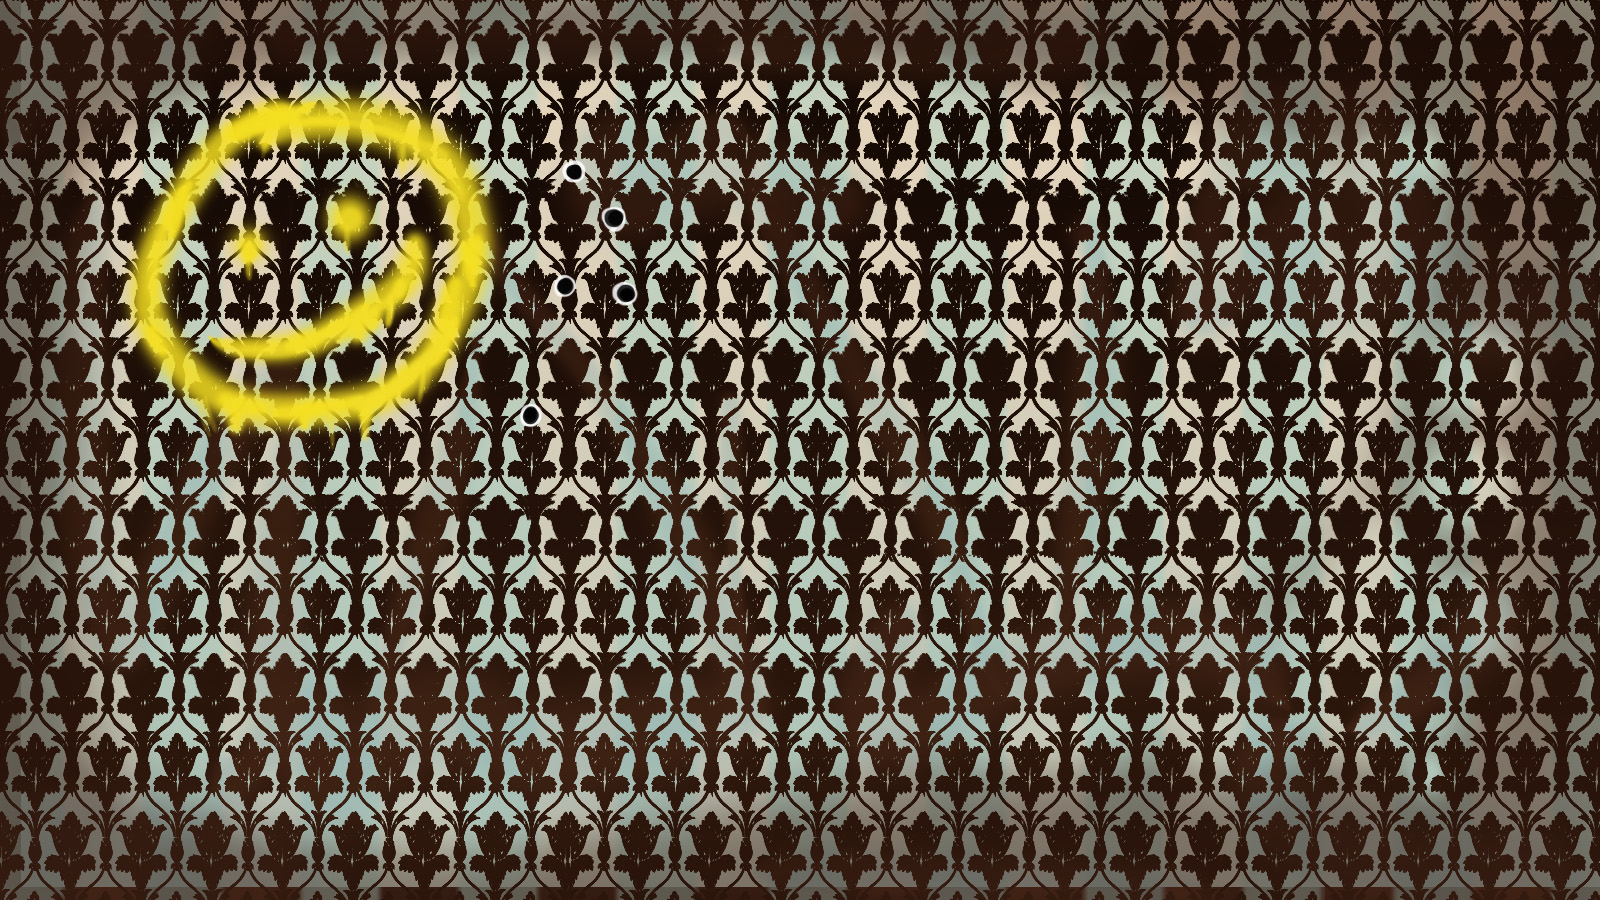 Bbc Sherlock Wallpaper With Smiley Face